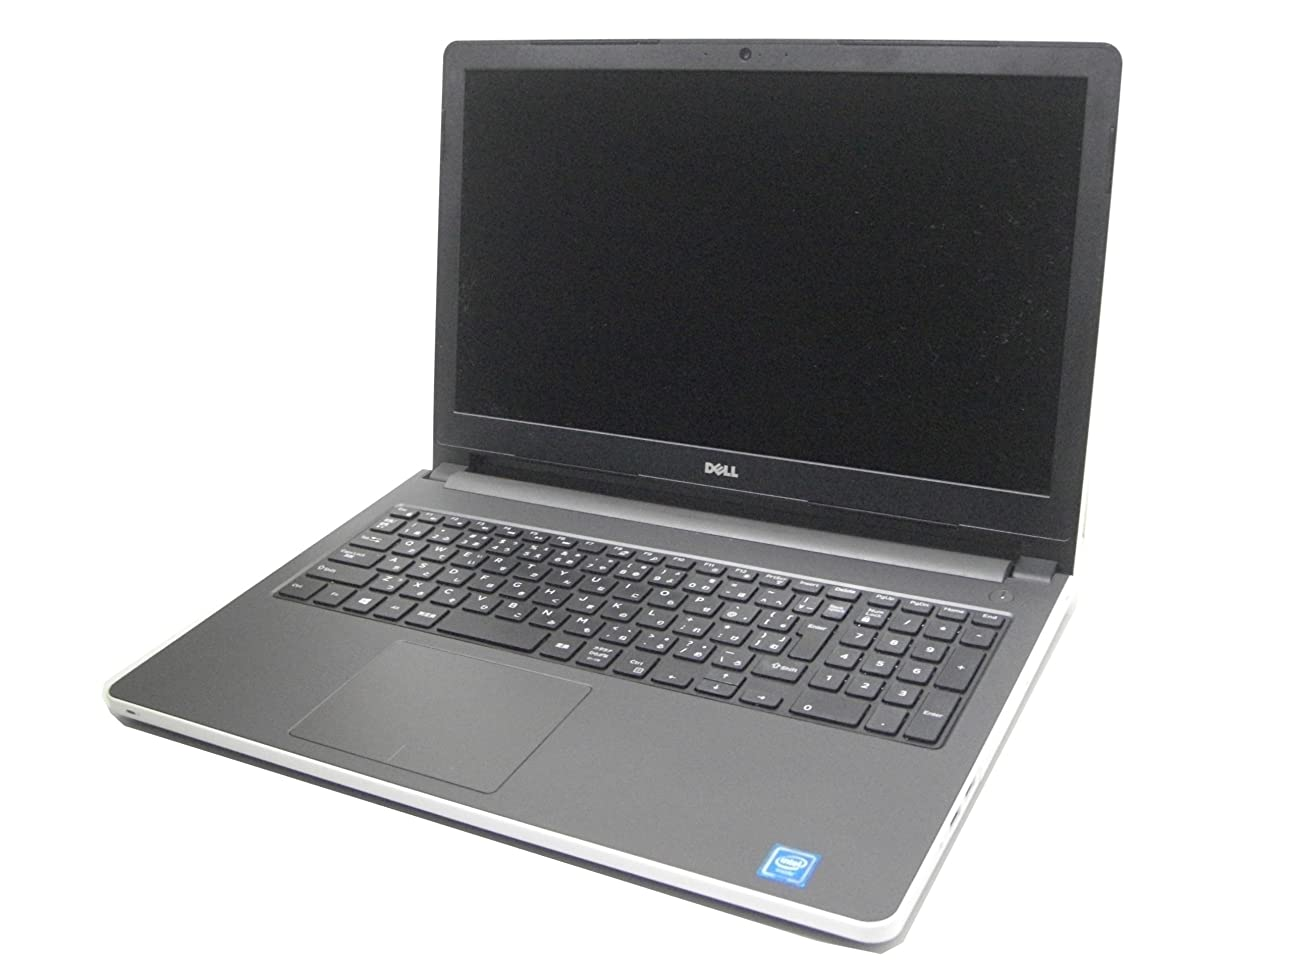 消費兵隊不潔【中古】 DELL INSPIRON 5558 (Celeron 3205U 1.5Ghz/4GB/1TB/DVD????????/15.6???(1366x768)/Win10Home 64bit/Office無し)